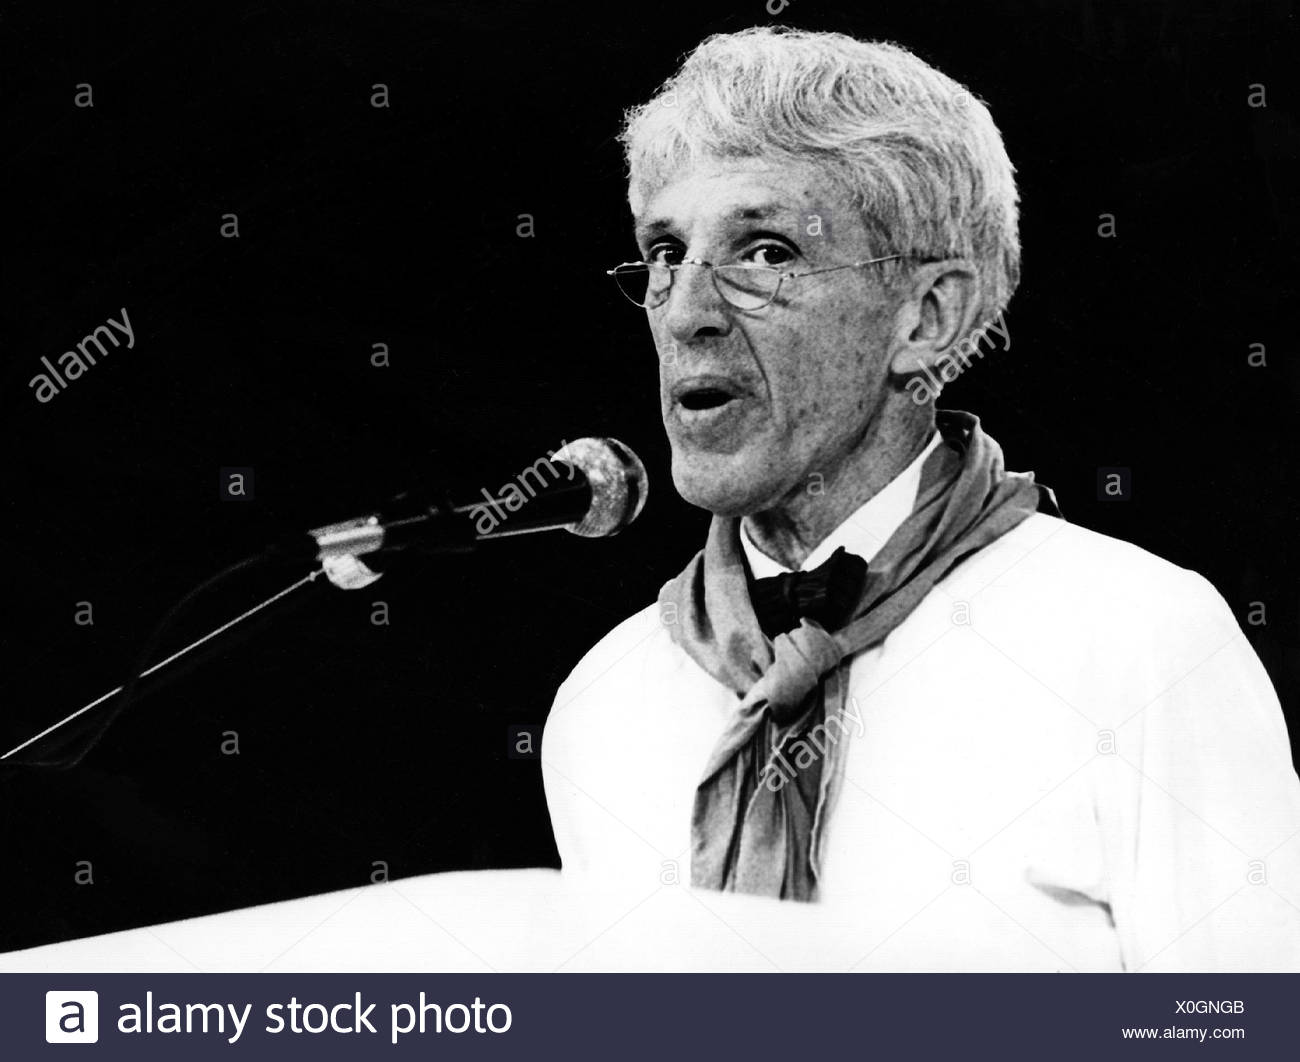 Hentig, Hartmut von, * 23.9.1925, German educationist, portrait, at the German Protestant Church Congress, Duesseldorf, Germany, 5. - 9.6.1985, Additional-Rights-Clearances-NA - Stock Image